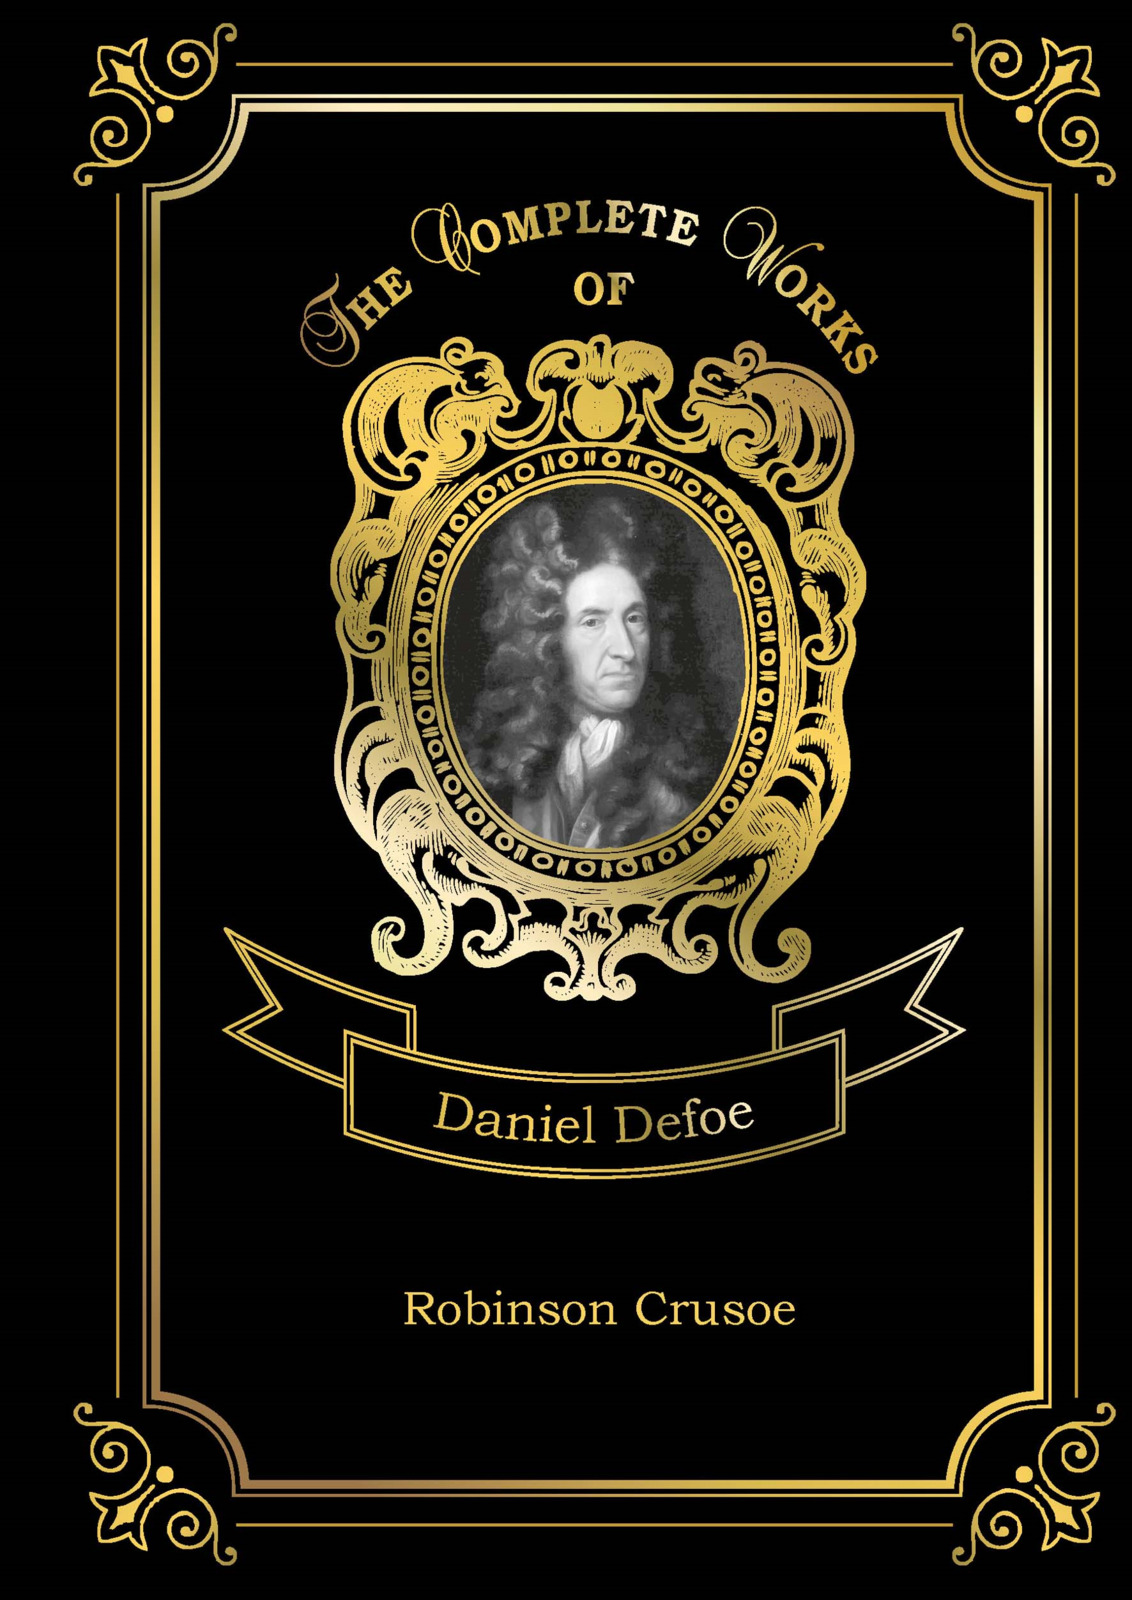 Defoe Daniel Robinson Crusoe ryan marah ellis told in the hills a novel